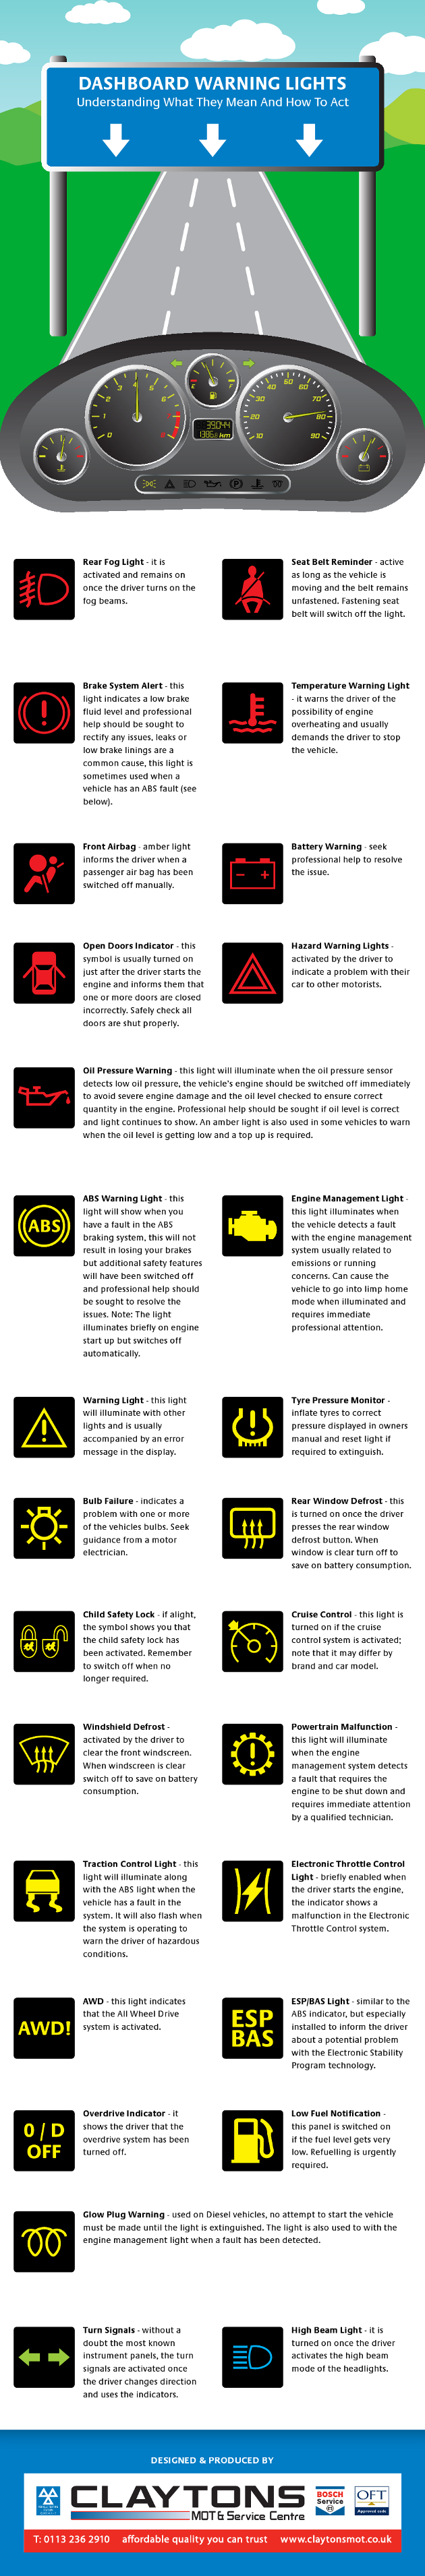 How To Read The Dashboard Warning Lights Instrument Panel - Car image sign of dashboarddashboard warningindicator light symbol quiz know what your